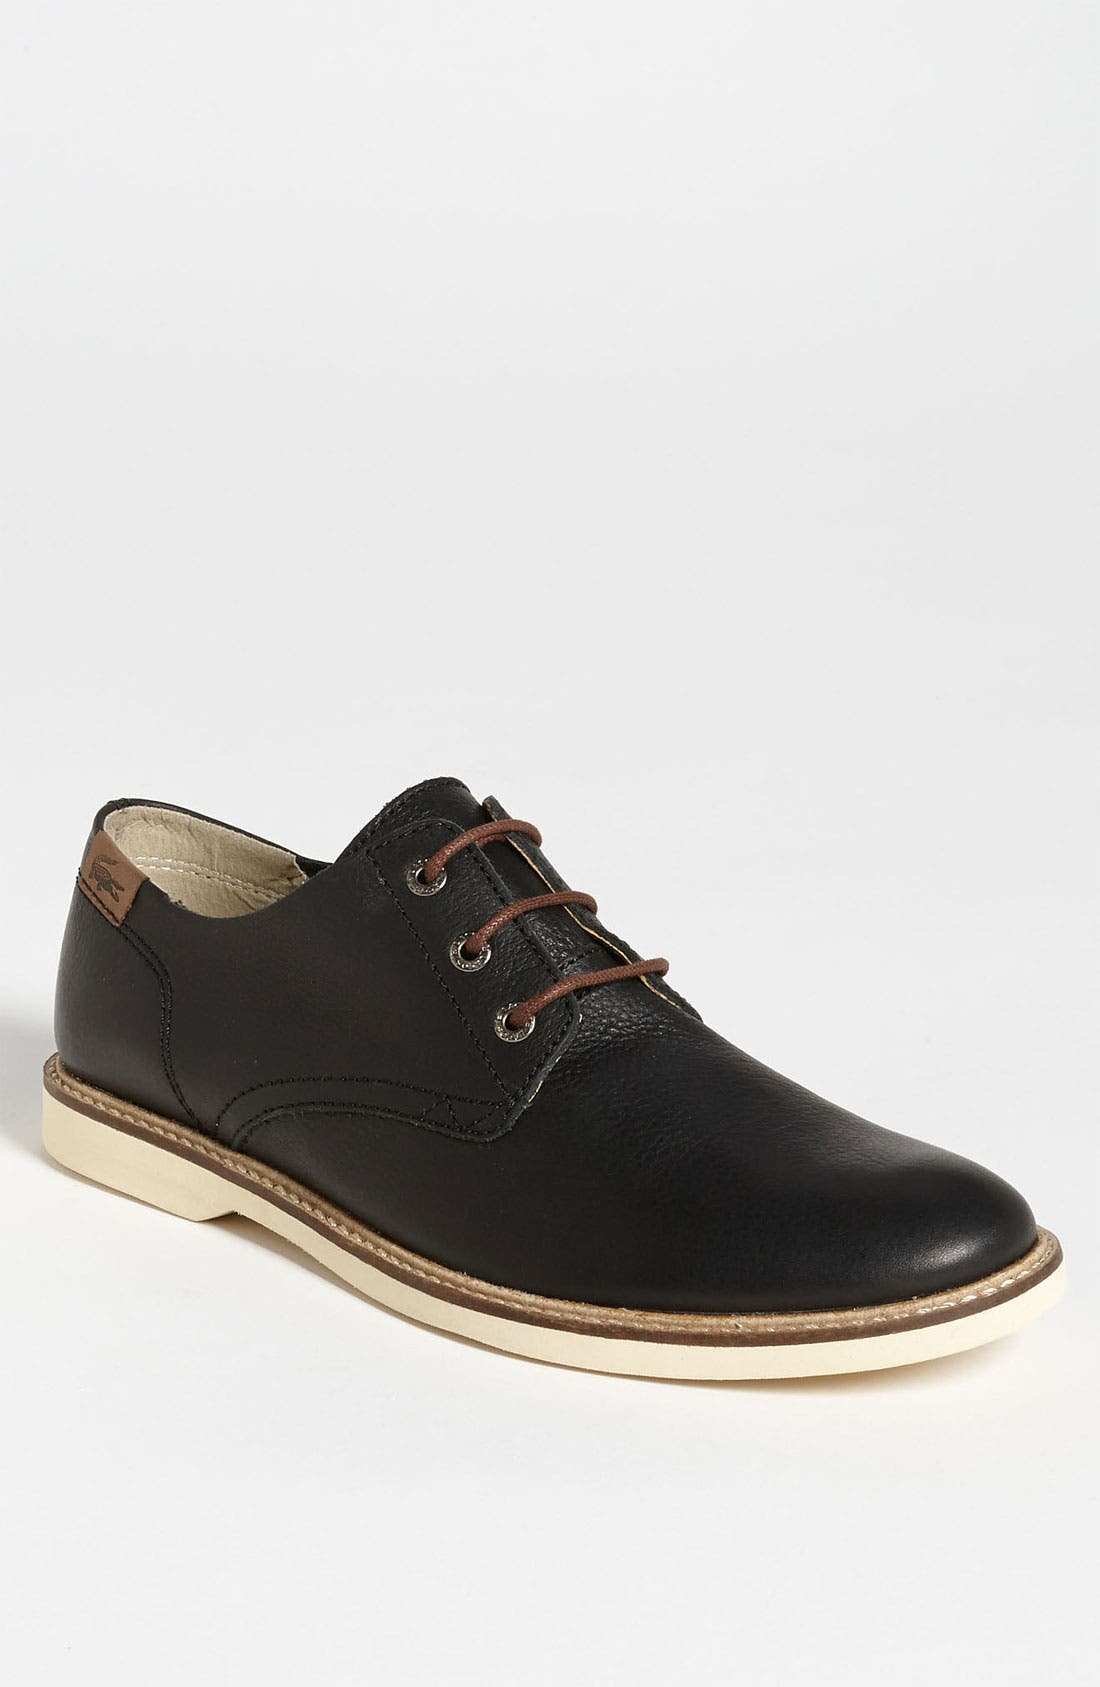 Alternate Image 1 Selected - Lacoste 'Sherbrooke 6' Oxford